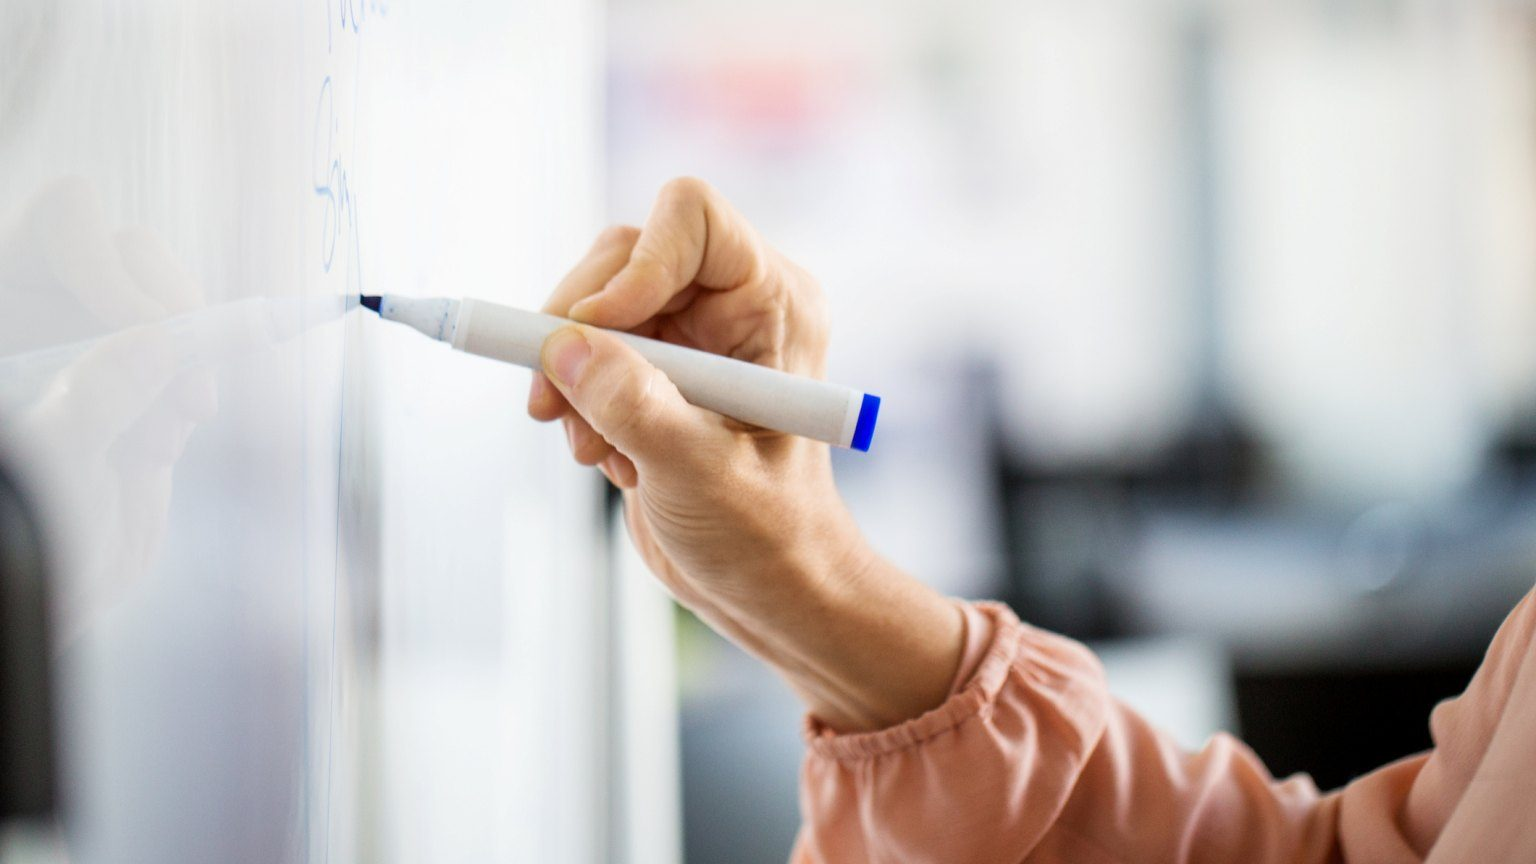 Cropped hand of businesswoman writing on whiteboard during meeting at creative office